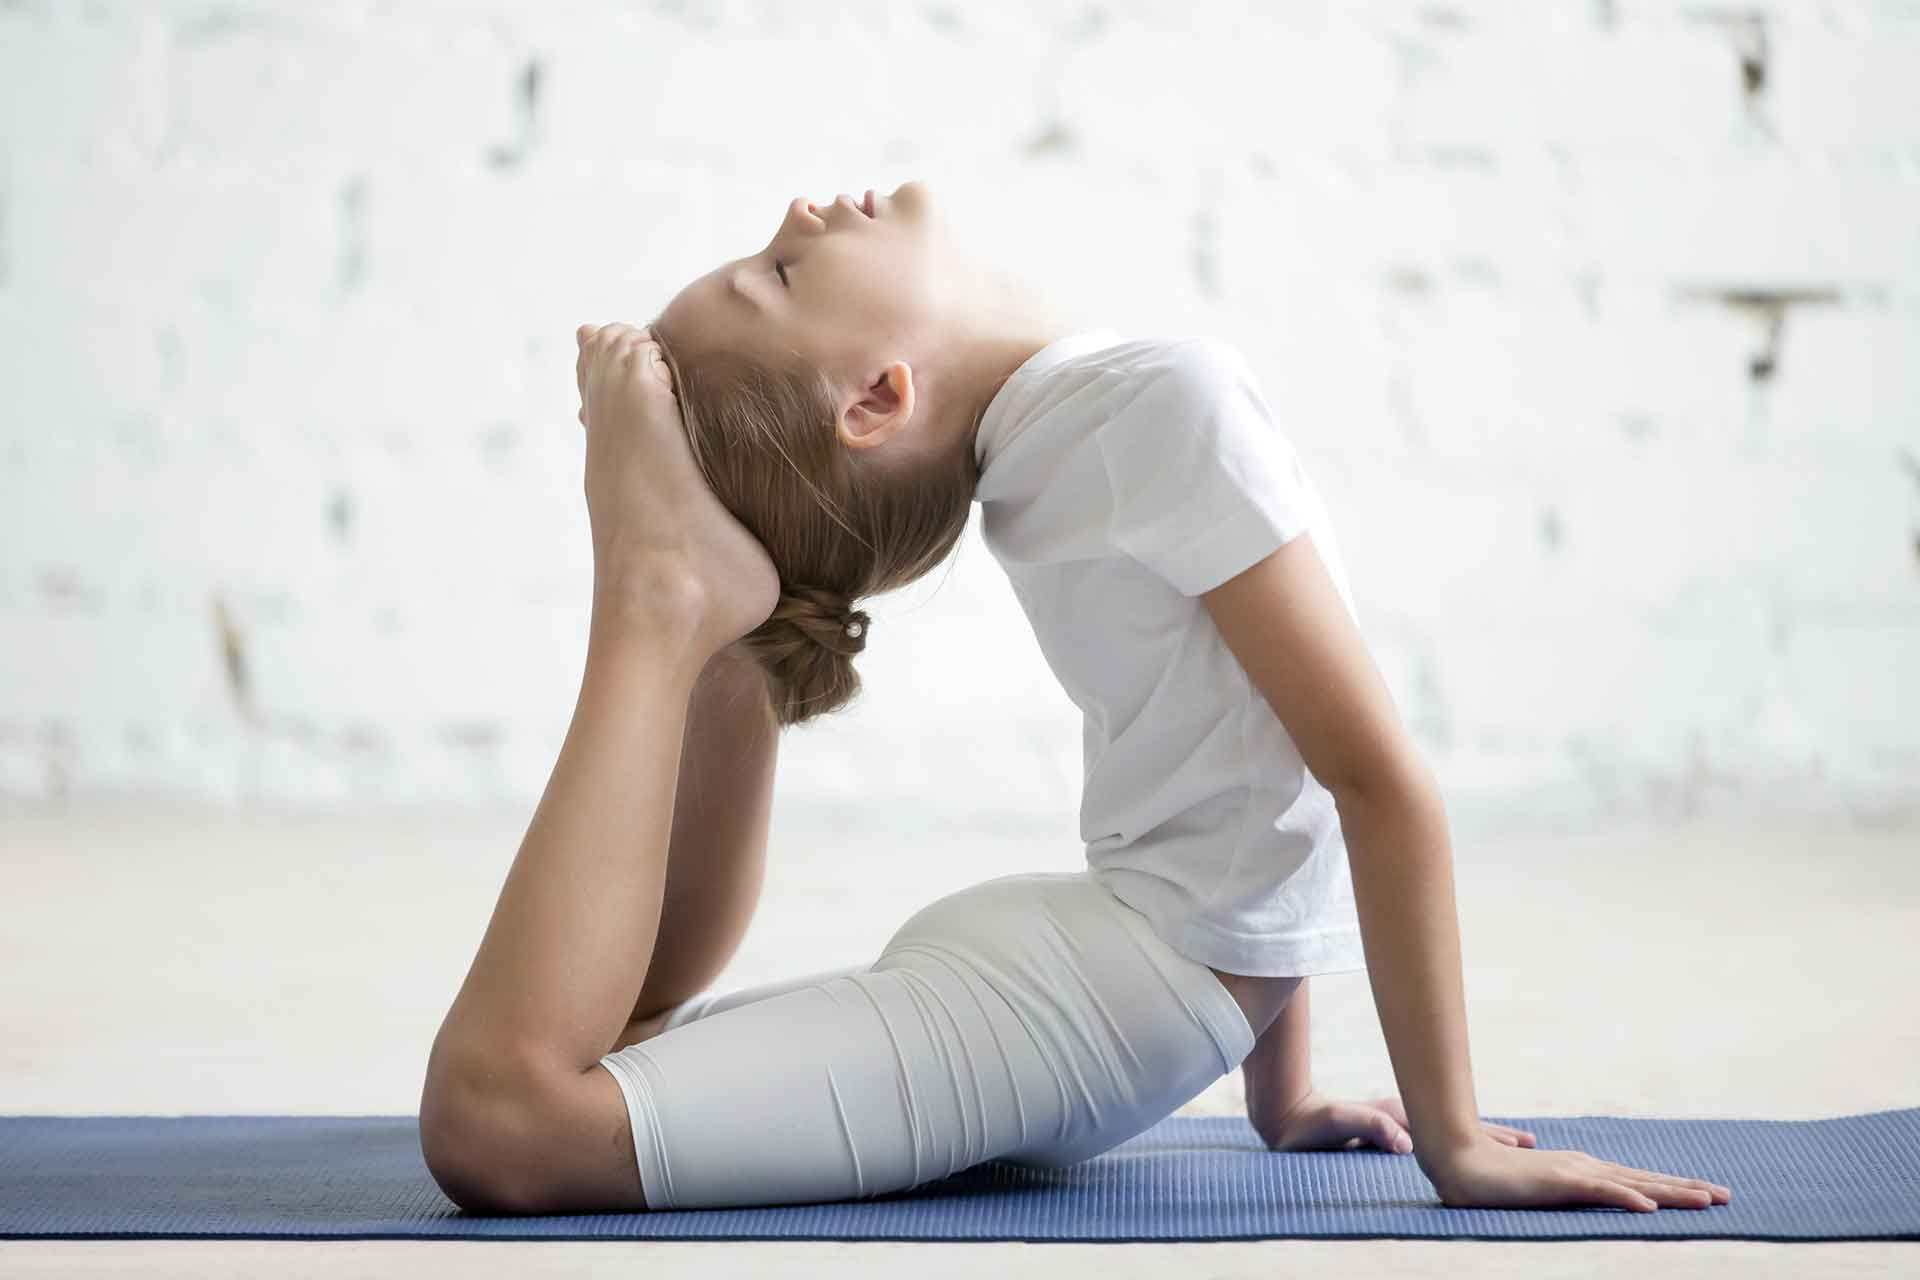 What yoga asanas should I practice to reduce fat especially belly fat? 4